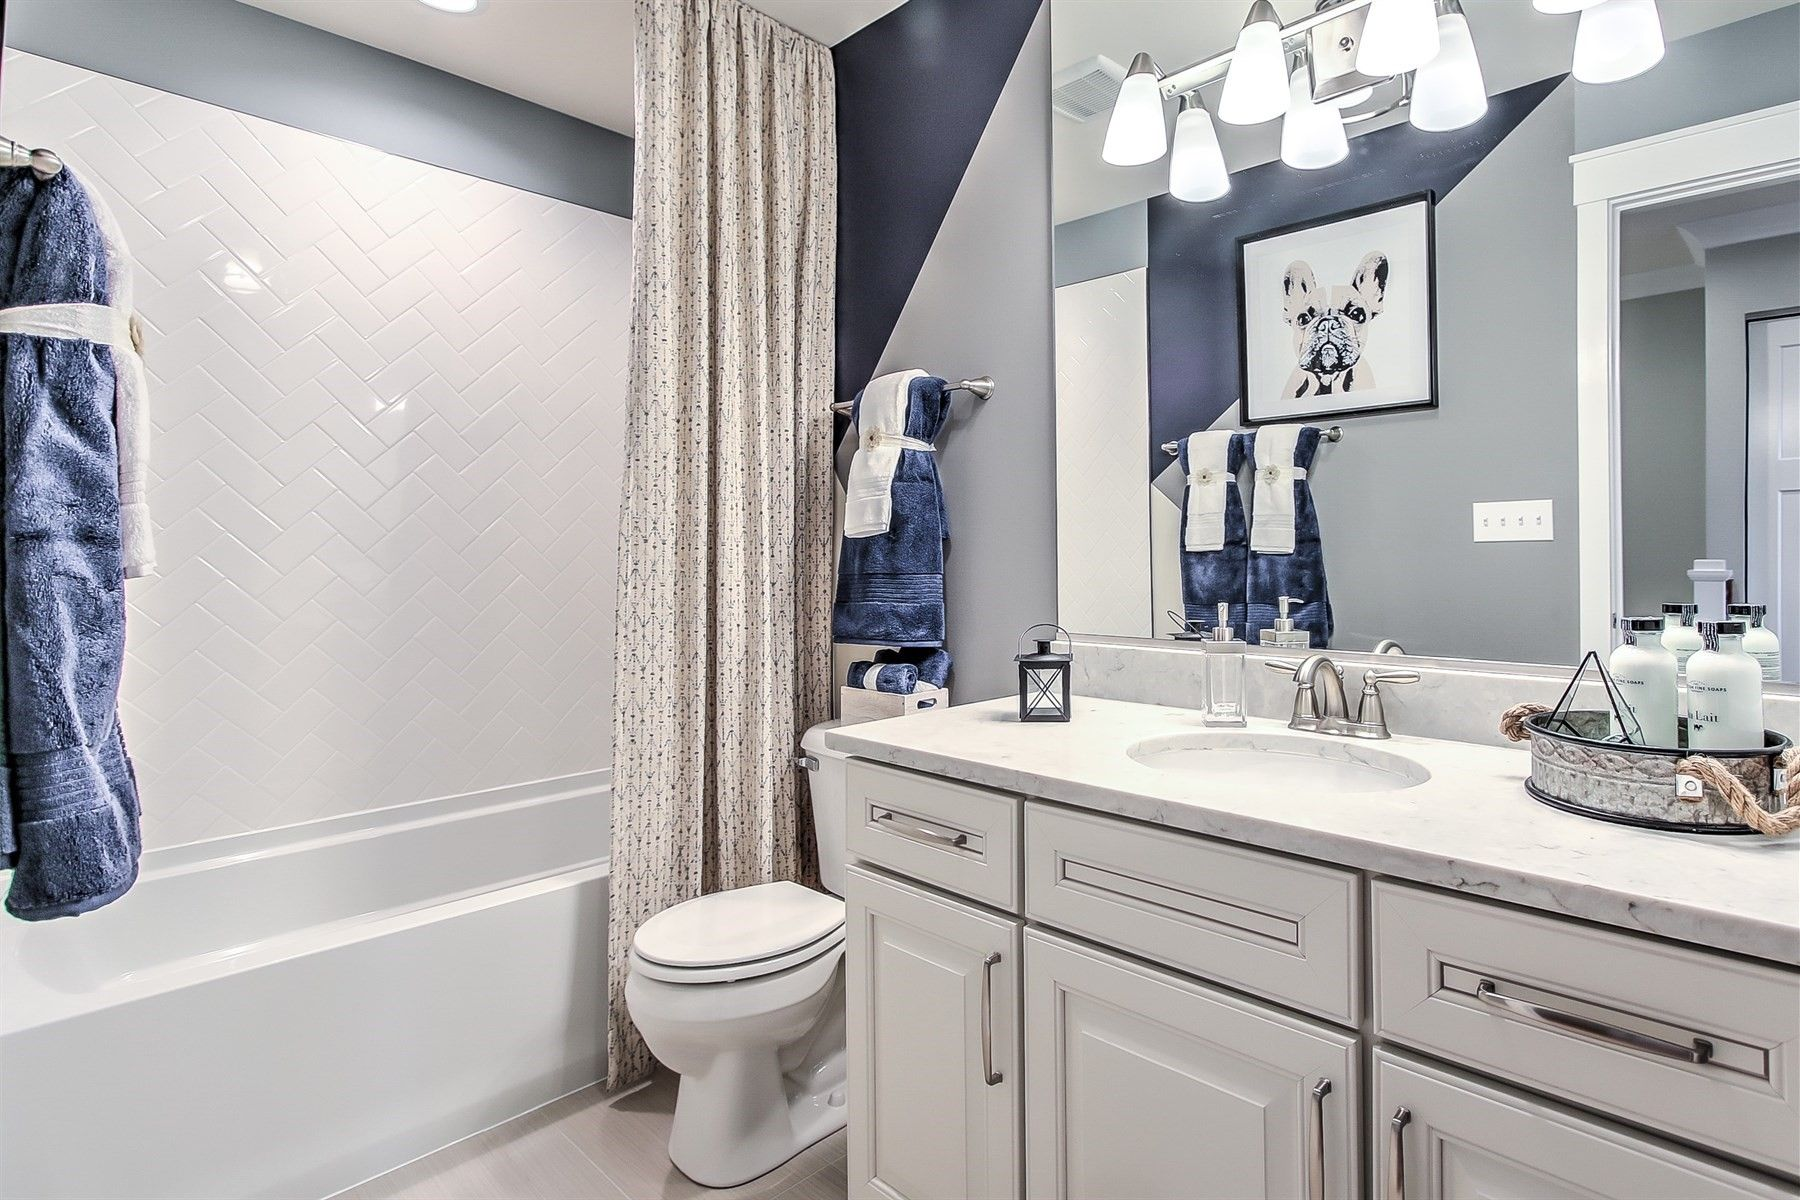 Bathroom featured in the Lasalle By M/I Homes in Chicago, IL